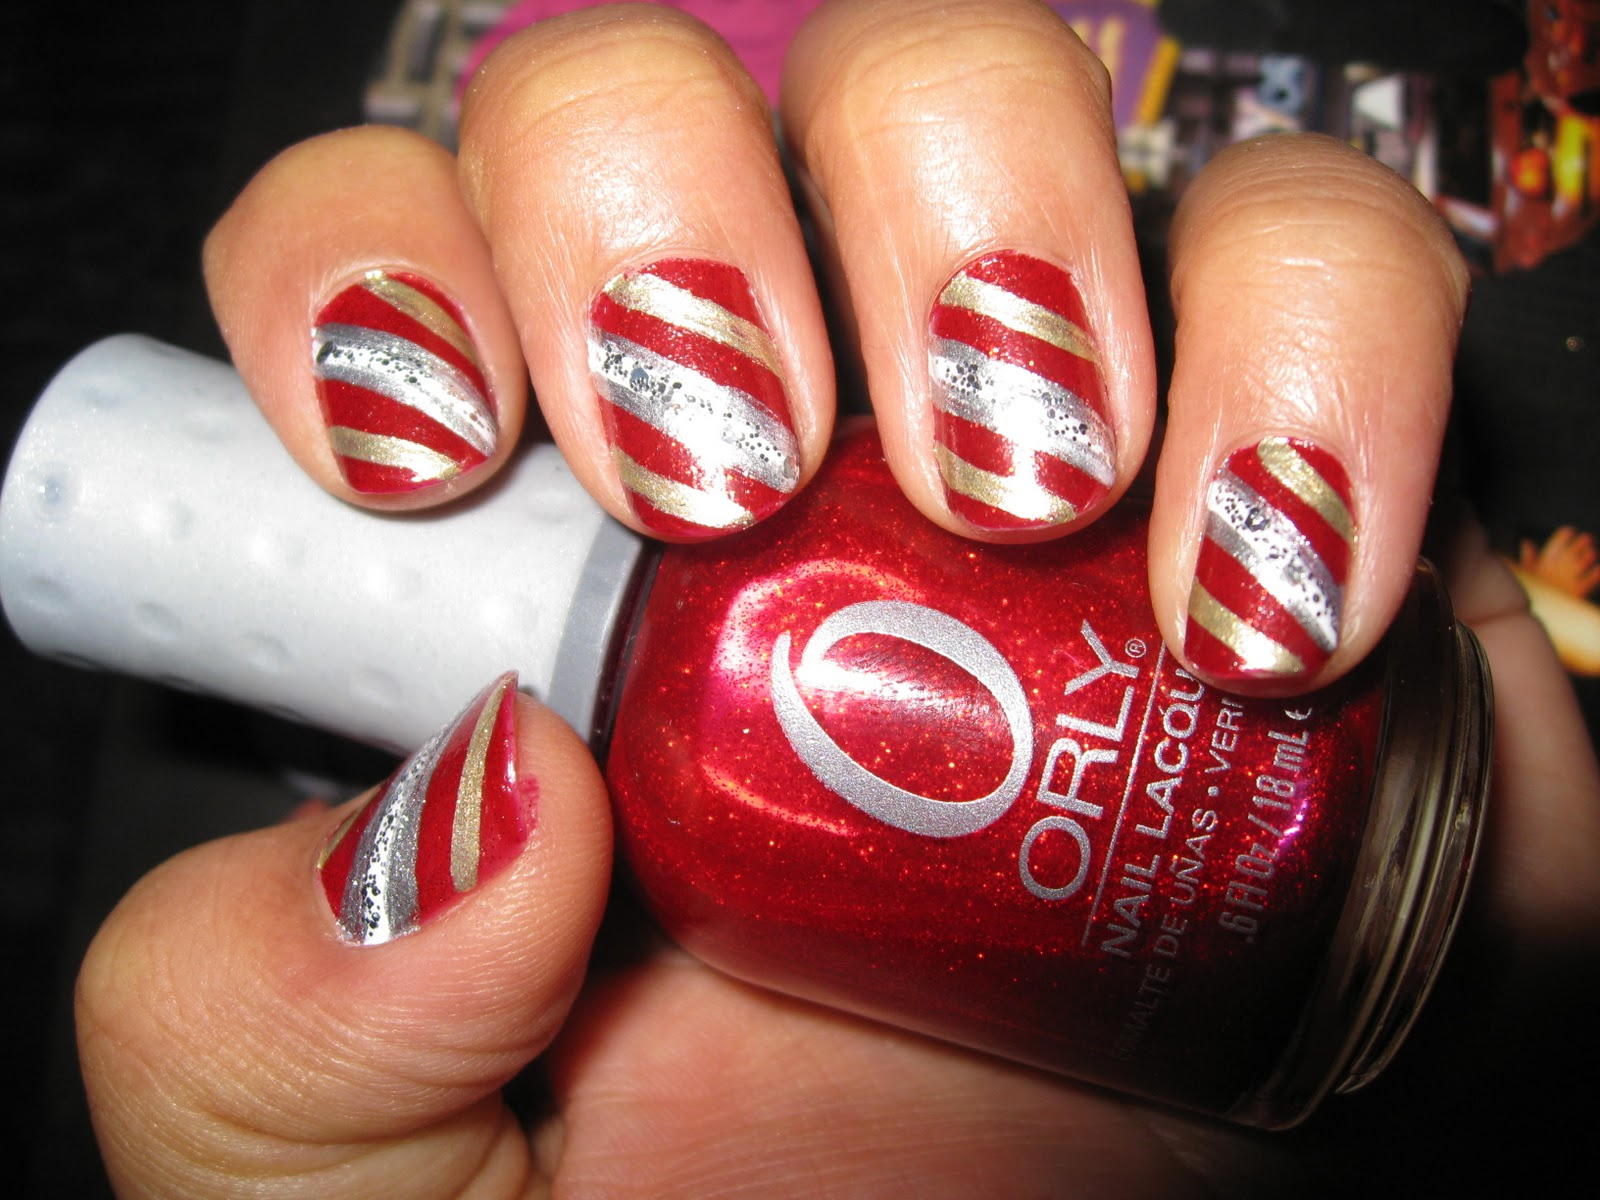 Nail Obsession - Candy Cane (Red & White) Nail Designs